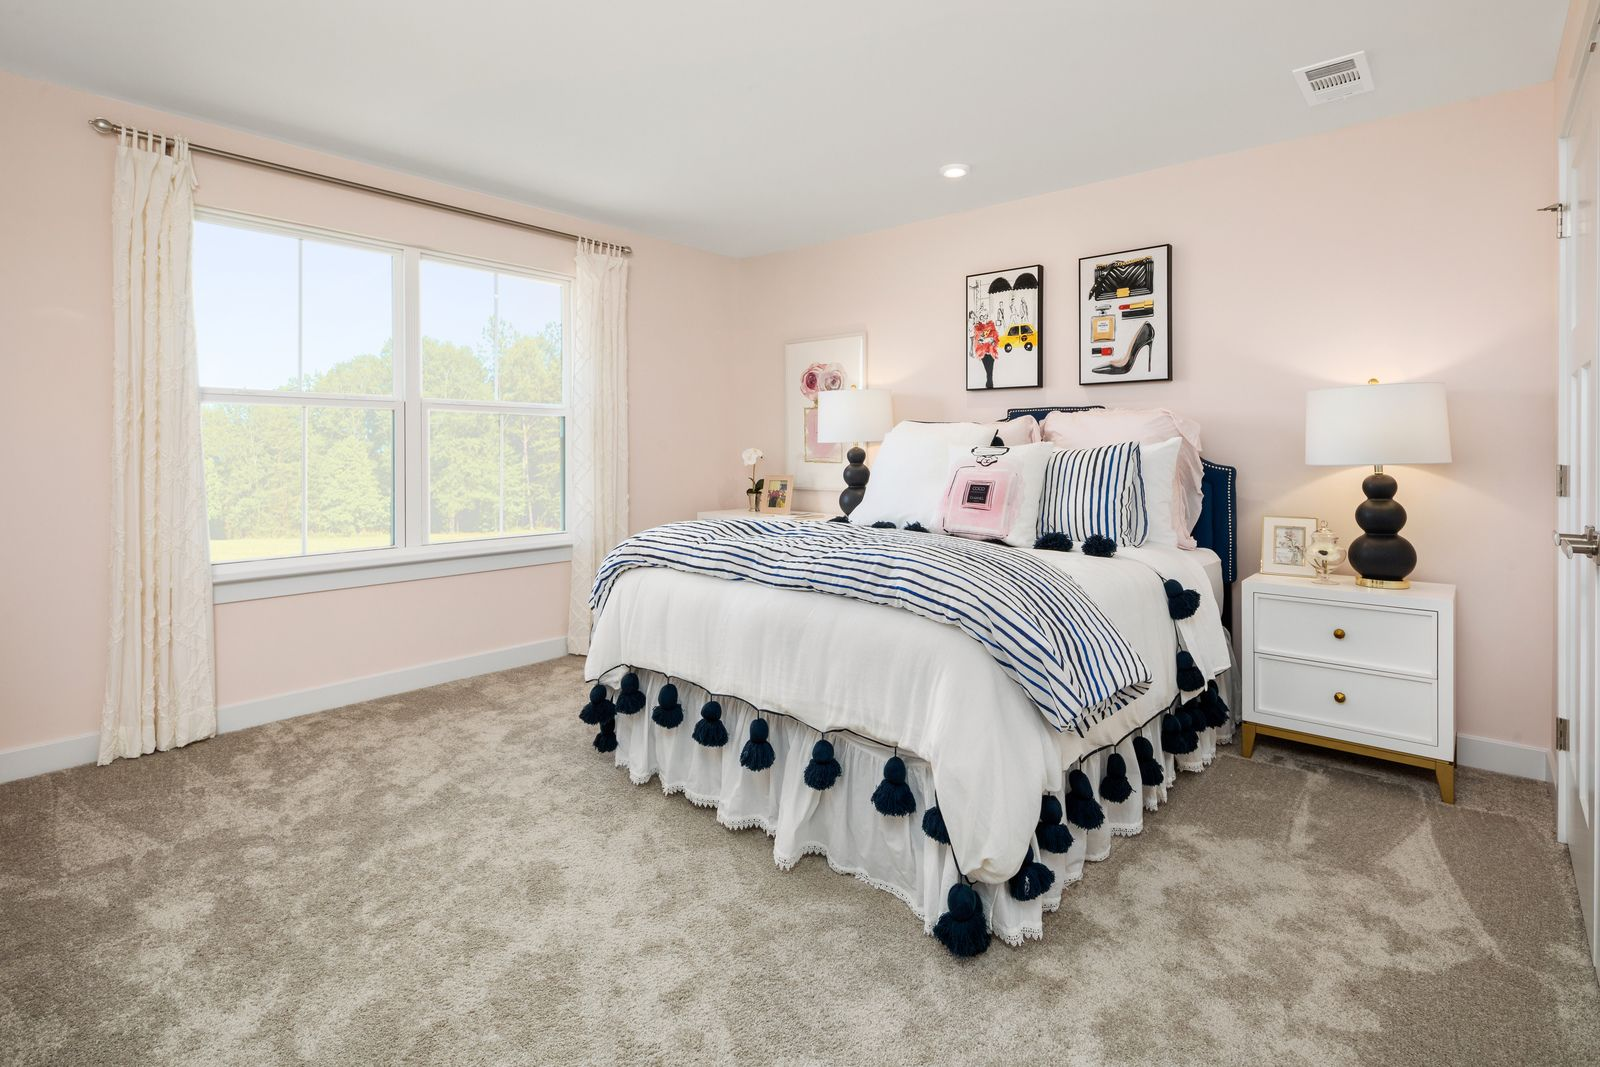 Bedroom featured in the Savannah with Full Basement By Ryan Homes in Indianapolis, IN